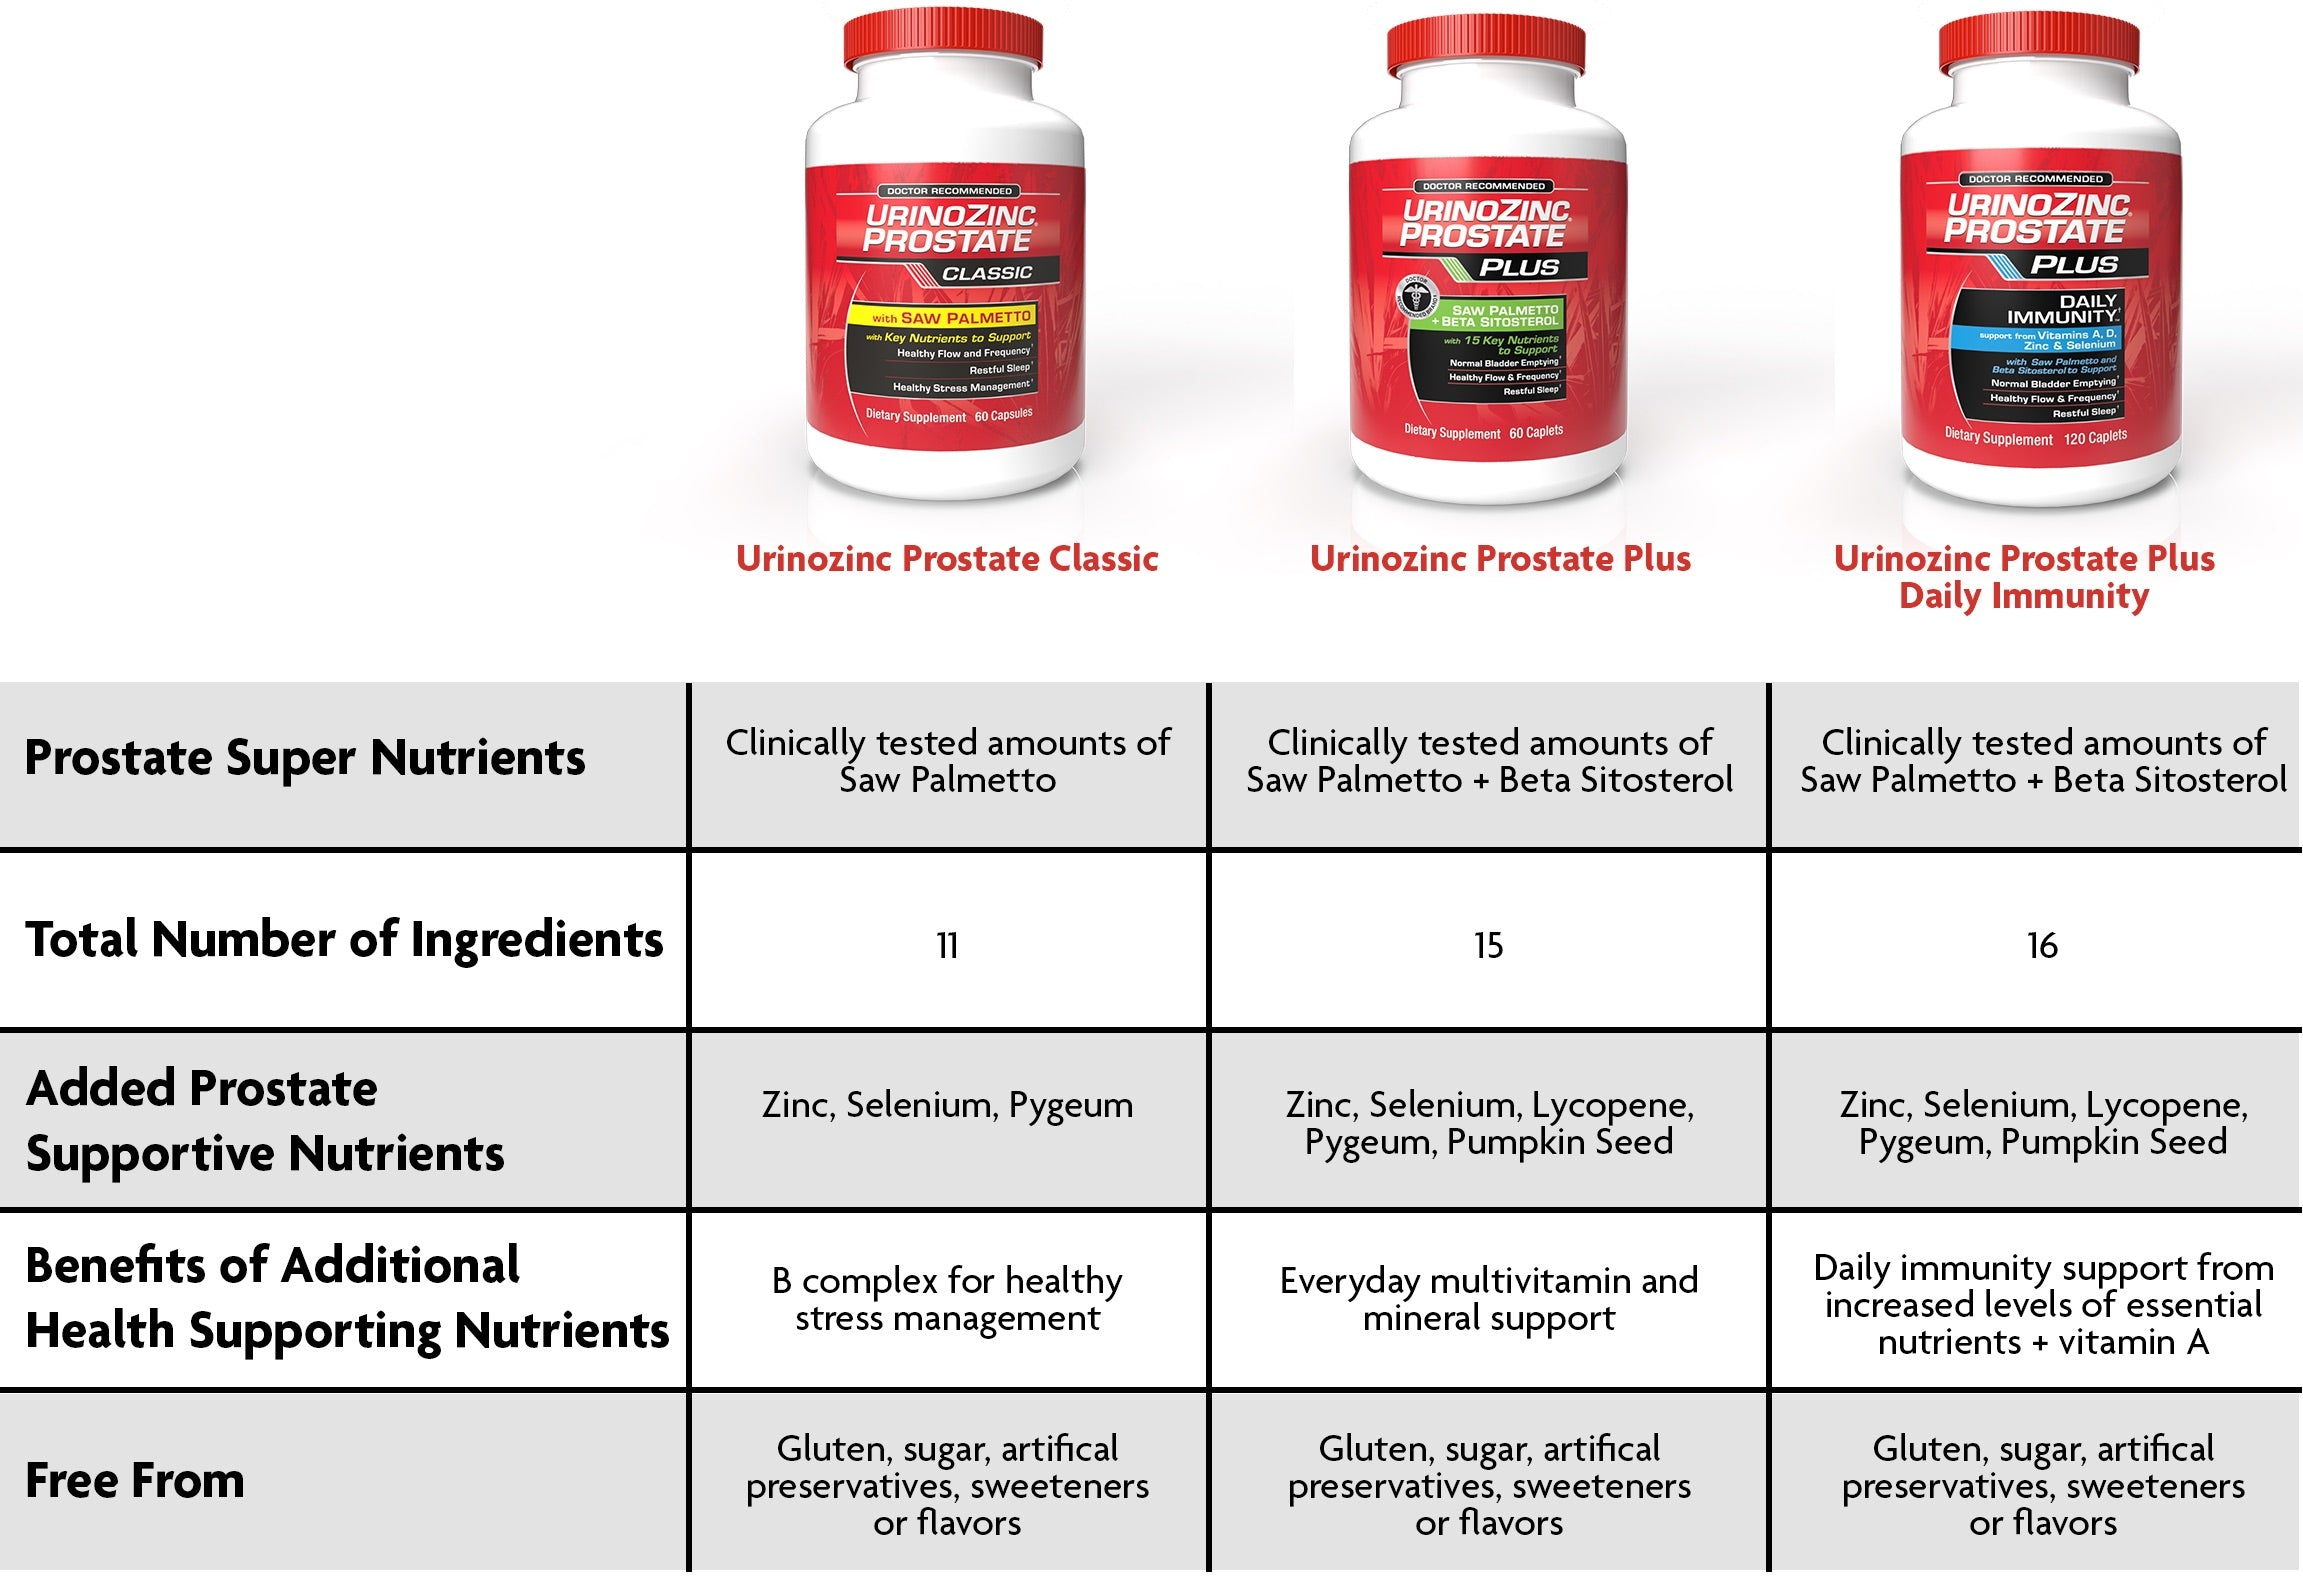 comparison chart of Prostate Plus Classic and other UrinoZinc products